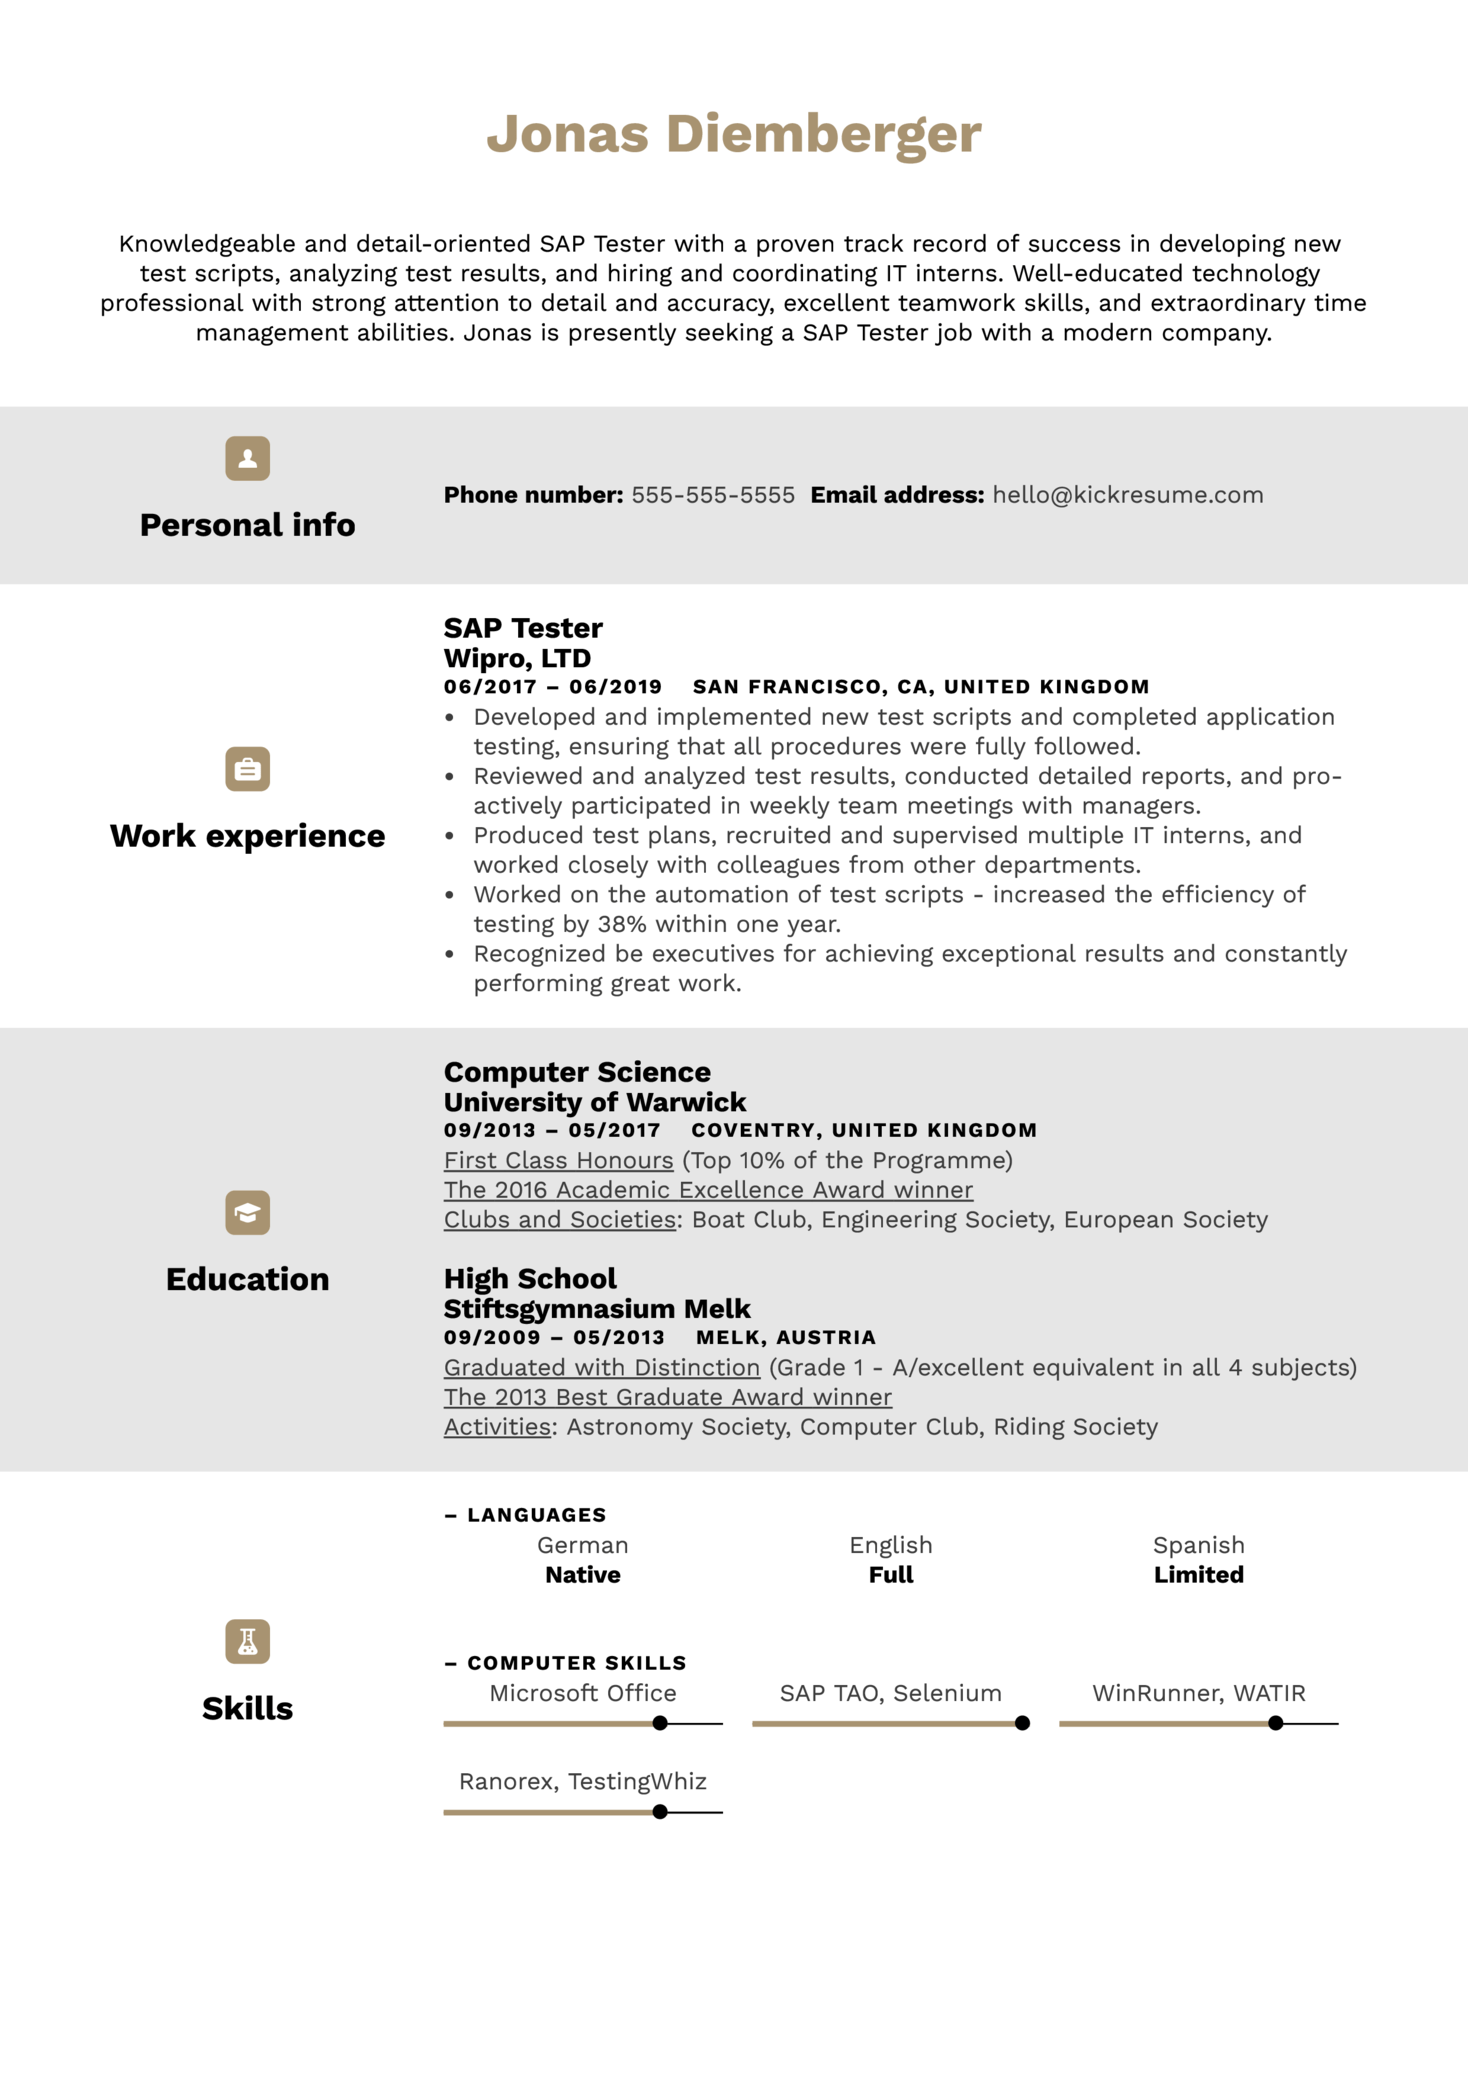 SAP Tester Resume Example (Part 1)